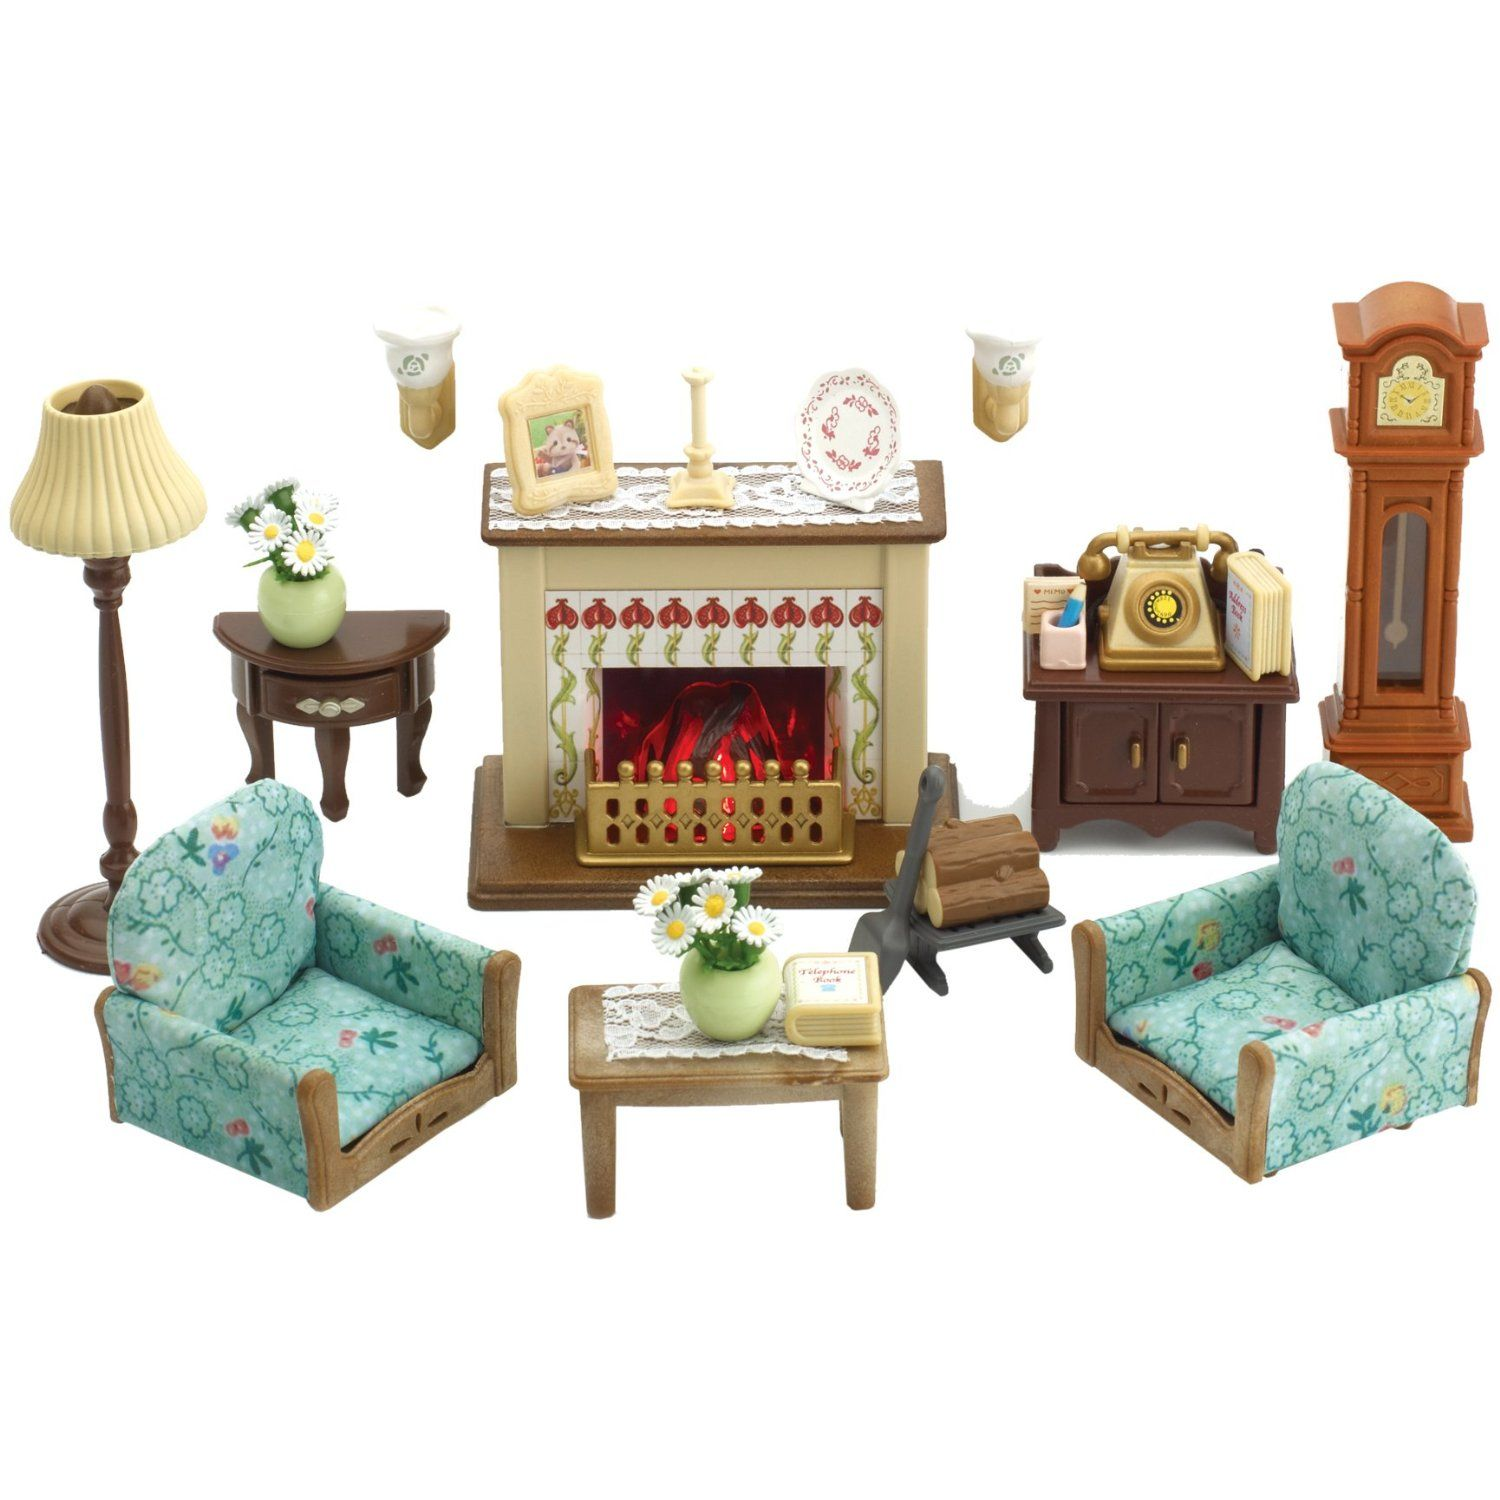 sylvanian-families-drawing-room-set-1724-p.jpg | Playmobile & Calico ...